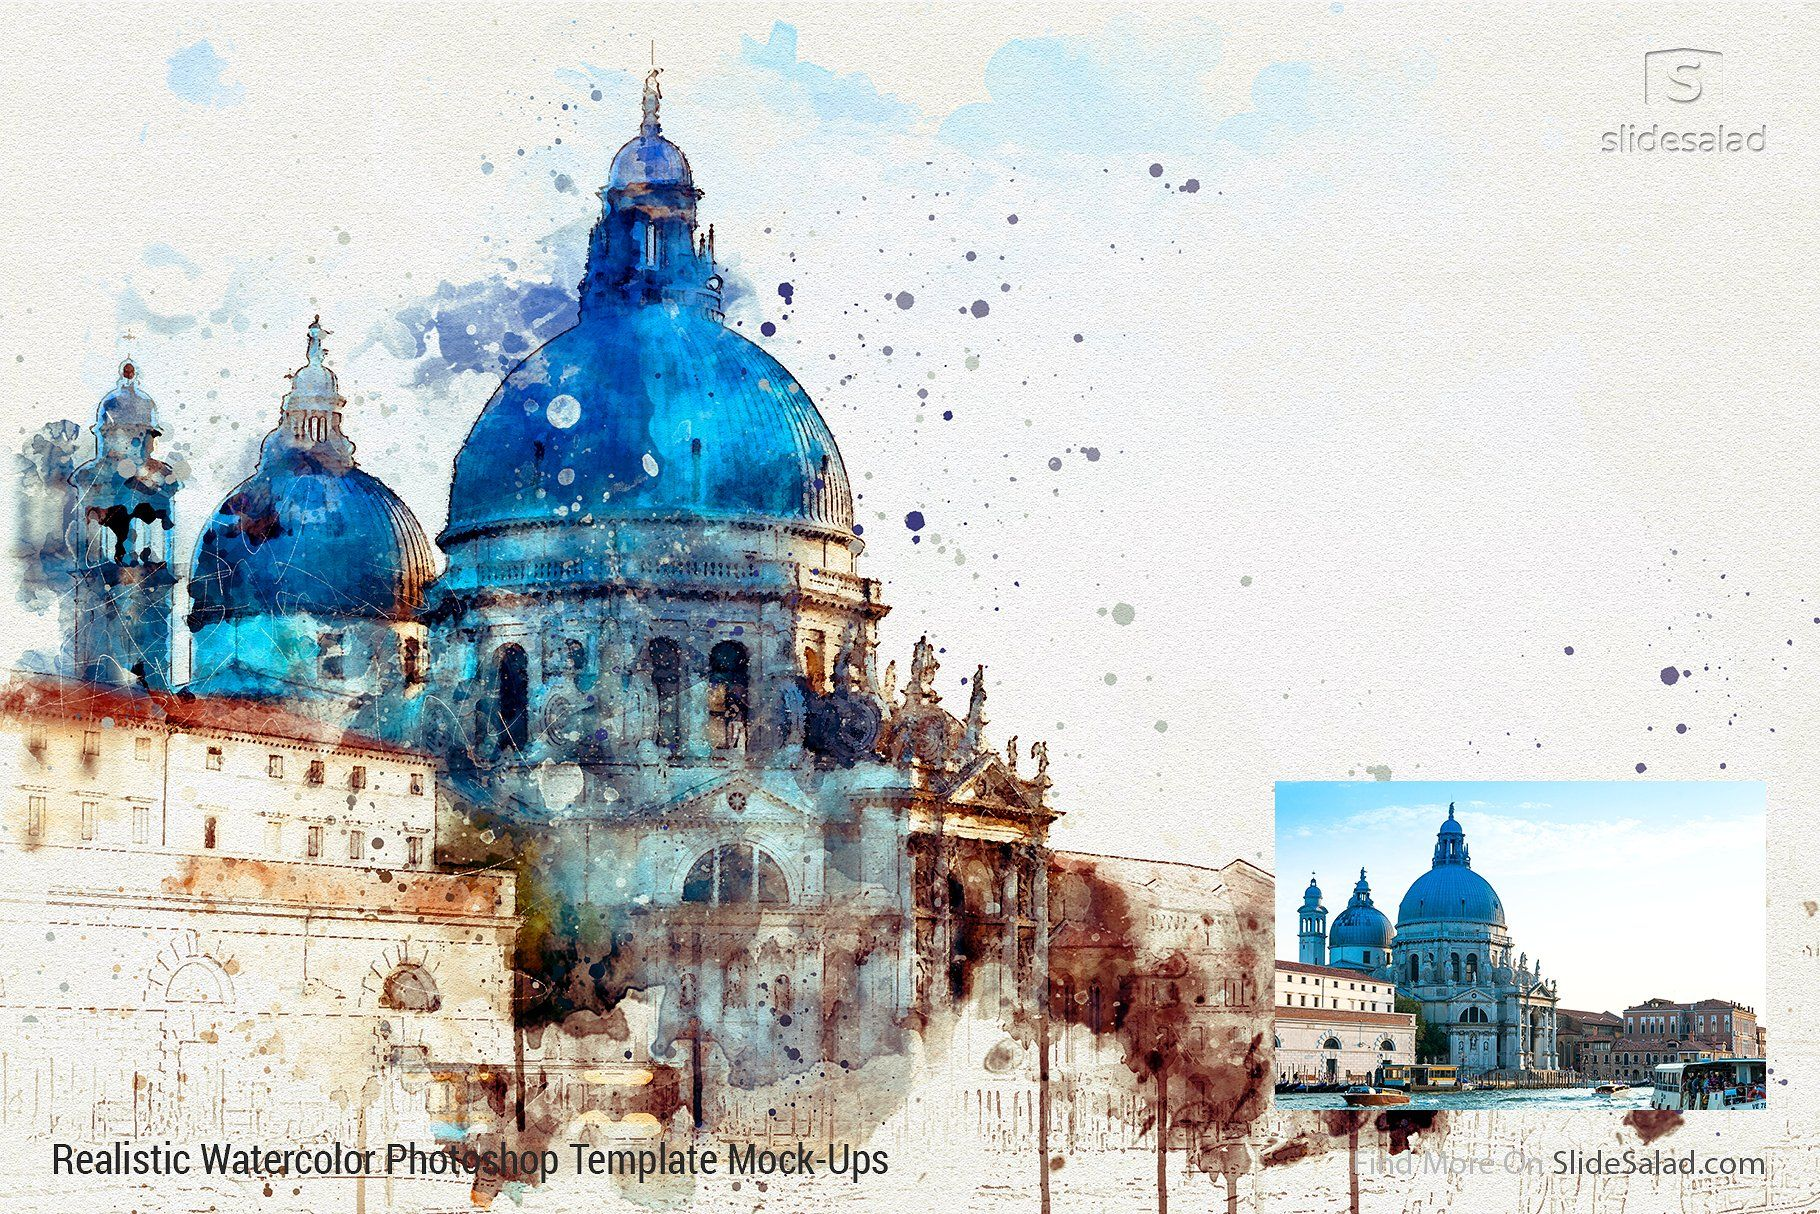 How To Create A Watercolor Painting Effect With Photoshop